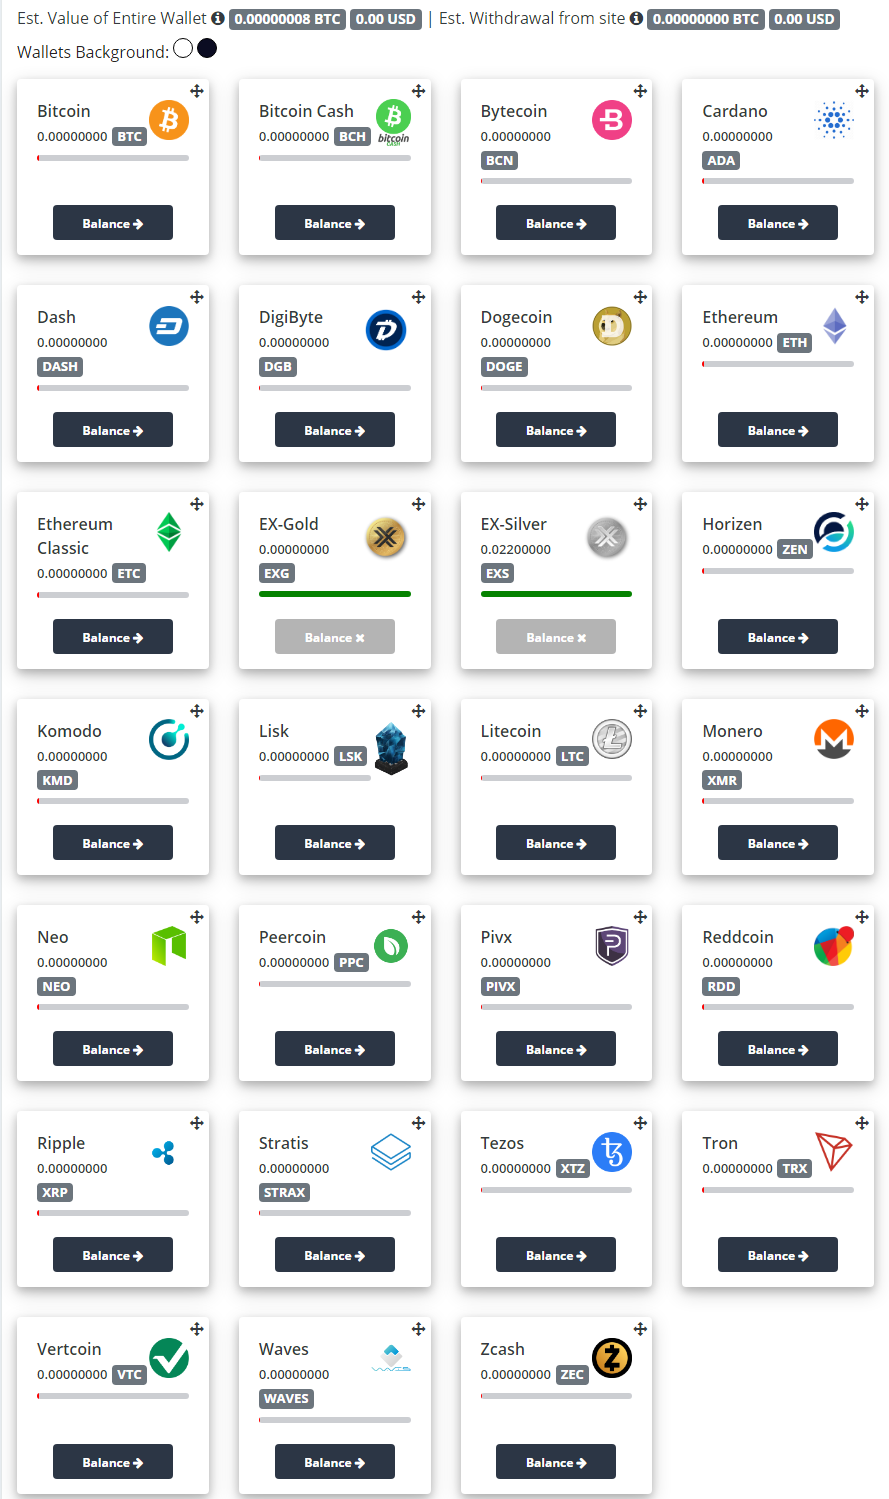 18-03-2021 expresscrypto dashboard1.png